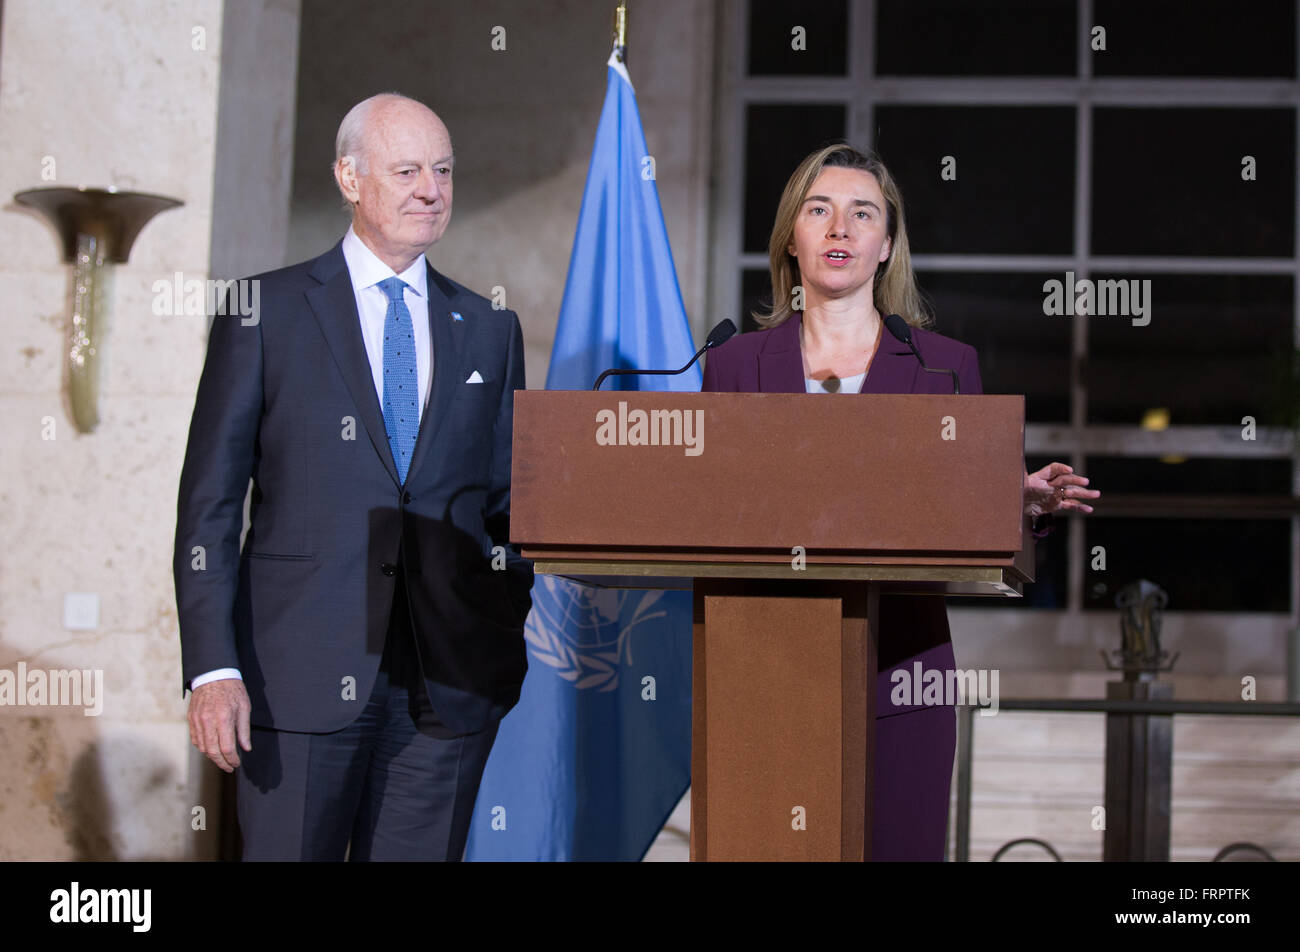 Geneva, Switzerland. 23rd Mar, 2016. EU foreign affairs chief Federica Mogherini (R) addresses the media along with - Stock Image